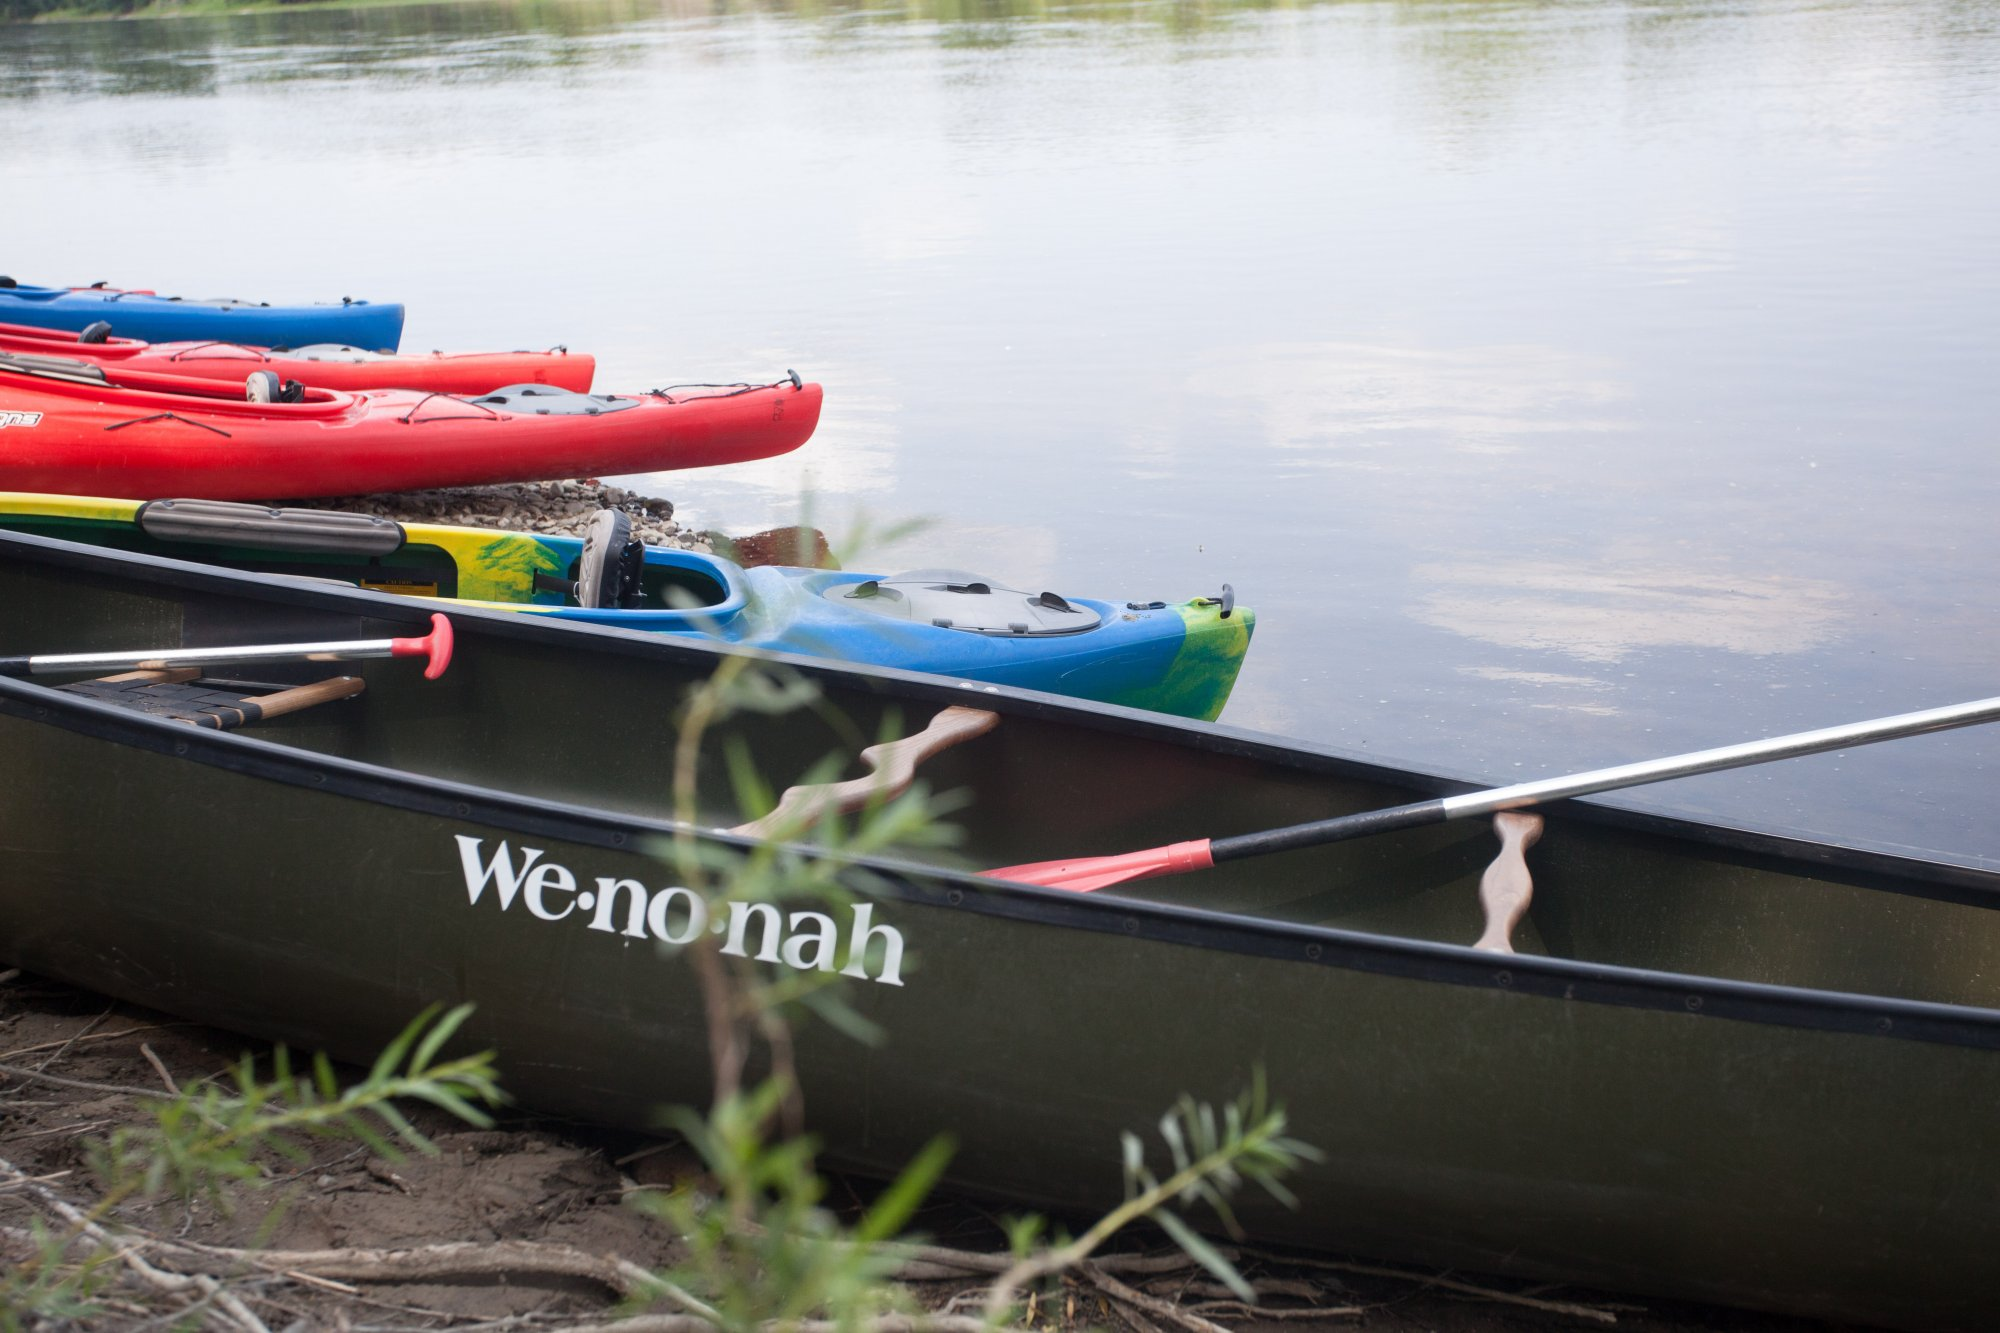 Shop for Canoes, Kayaks, & SUP boards in Central Minnesota